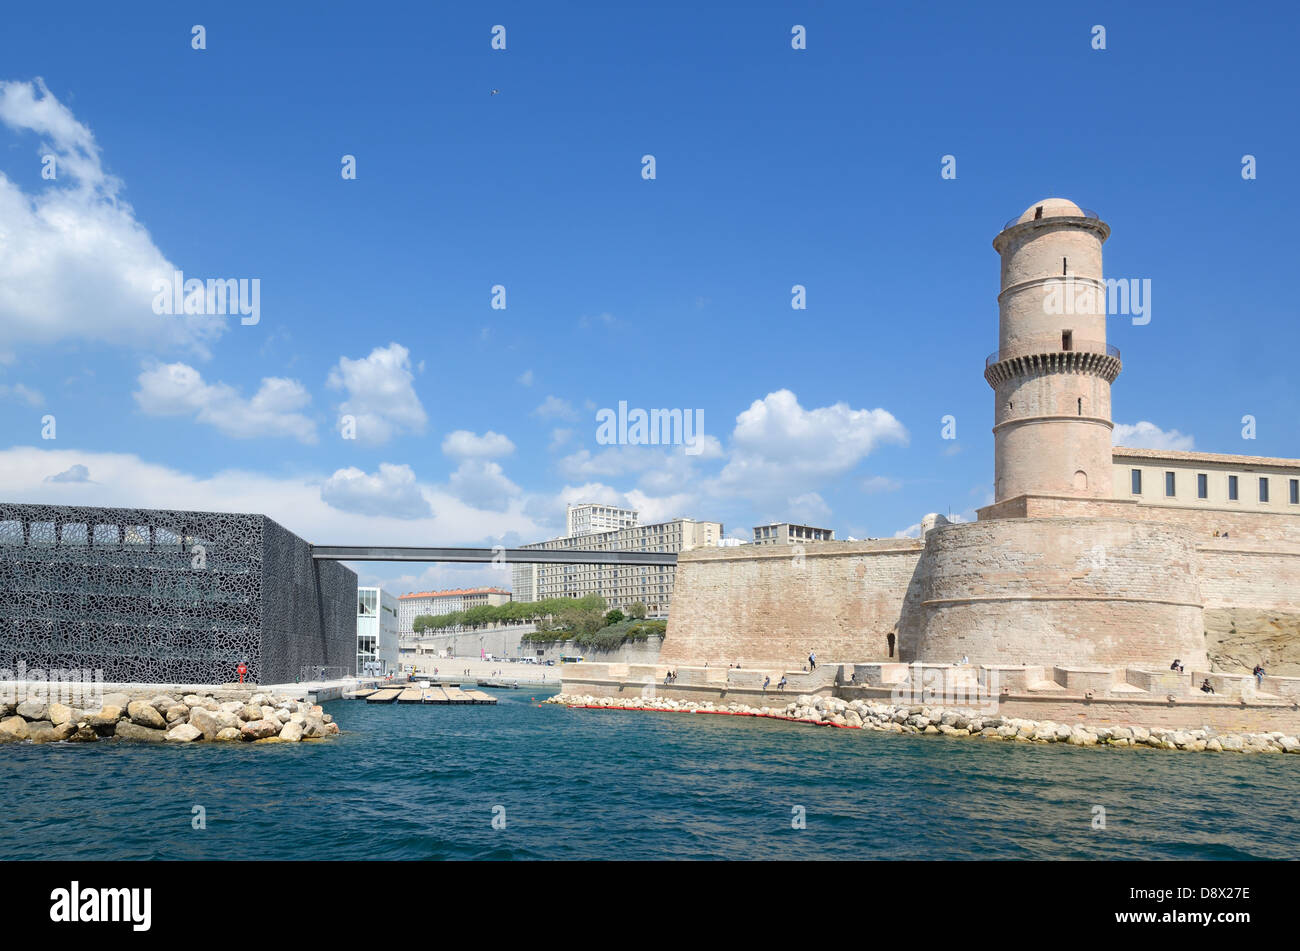 Fort saint jean mucem museum and gallery by rudy - Parking vieux port fort saint jean marseille ...